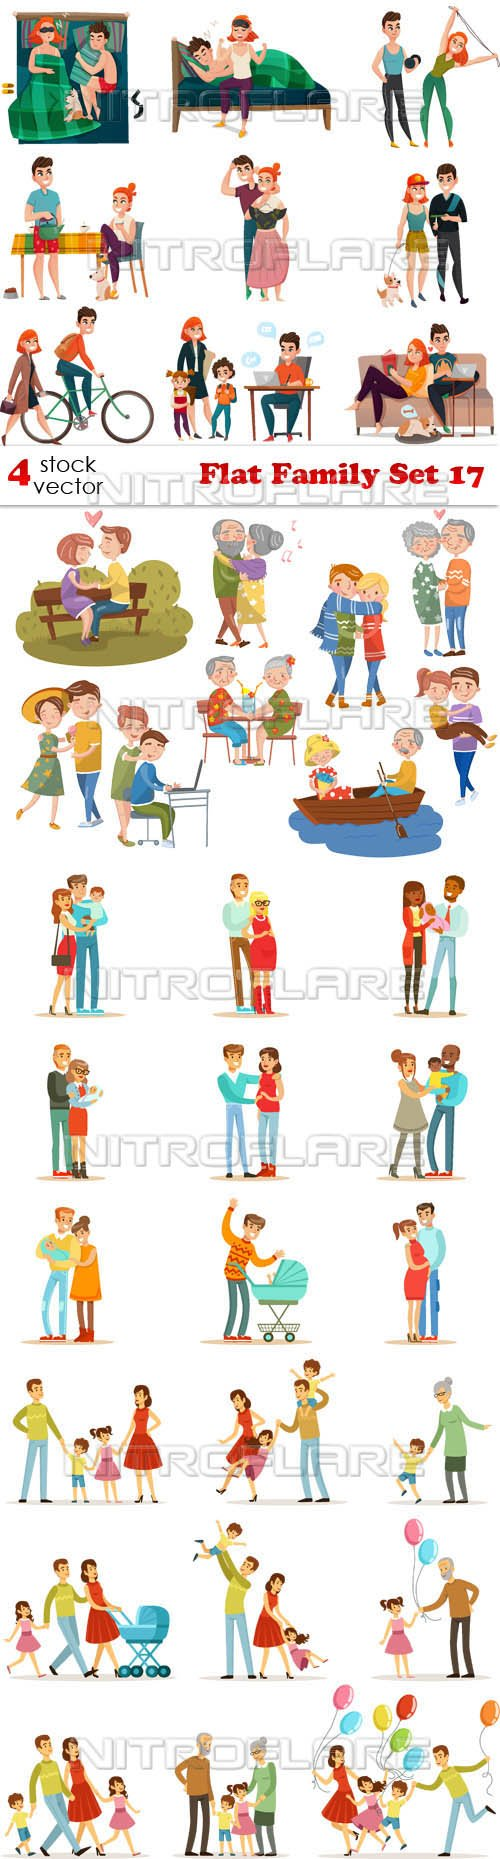 Vectors - Flat Family Set 17